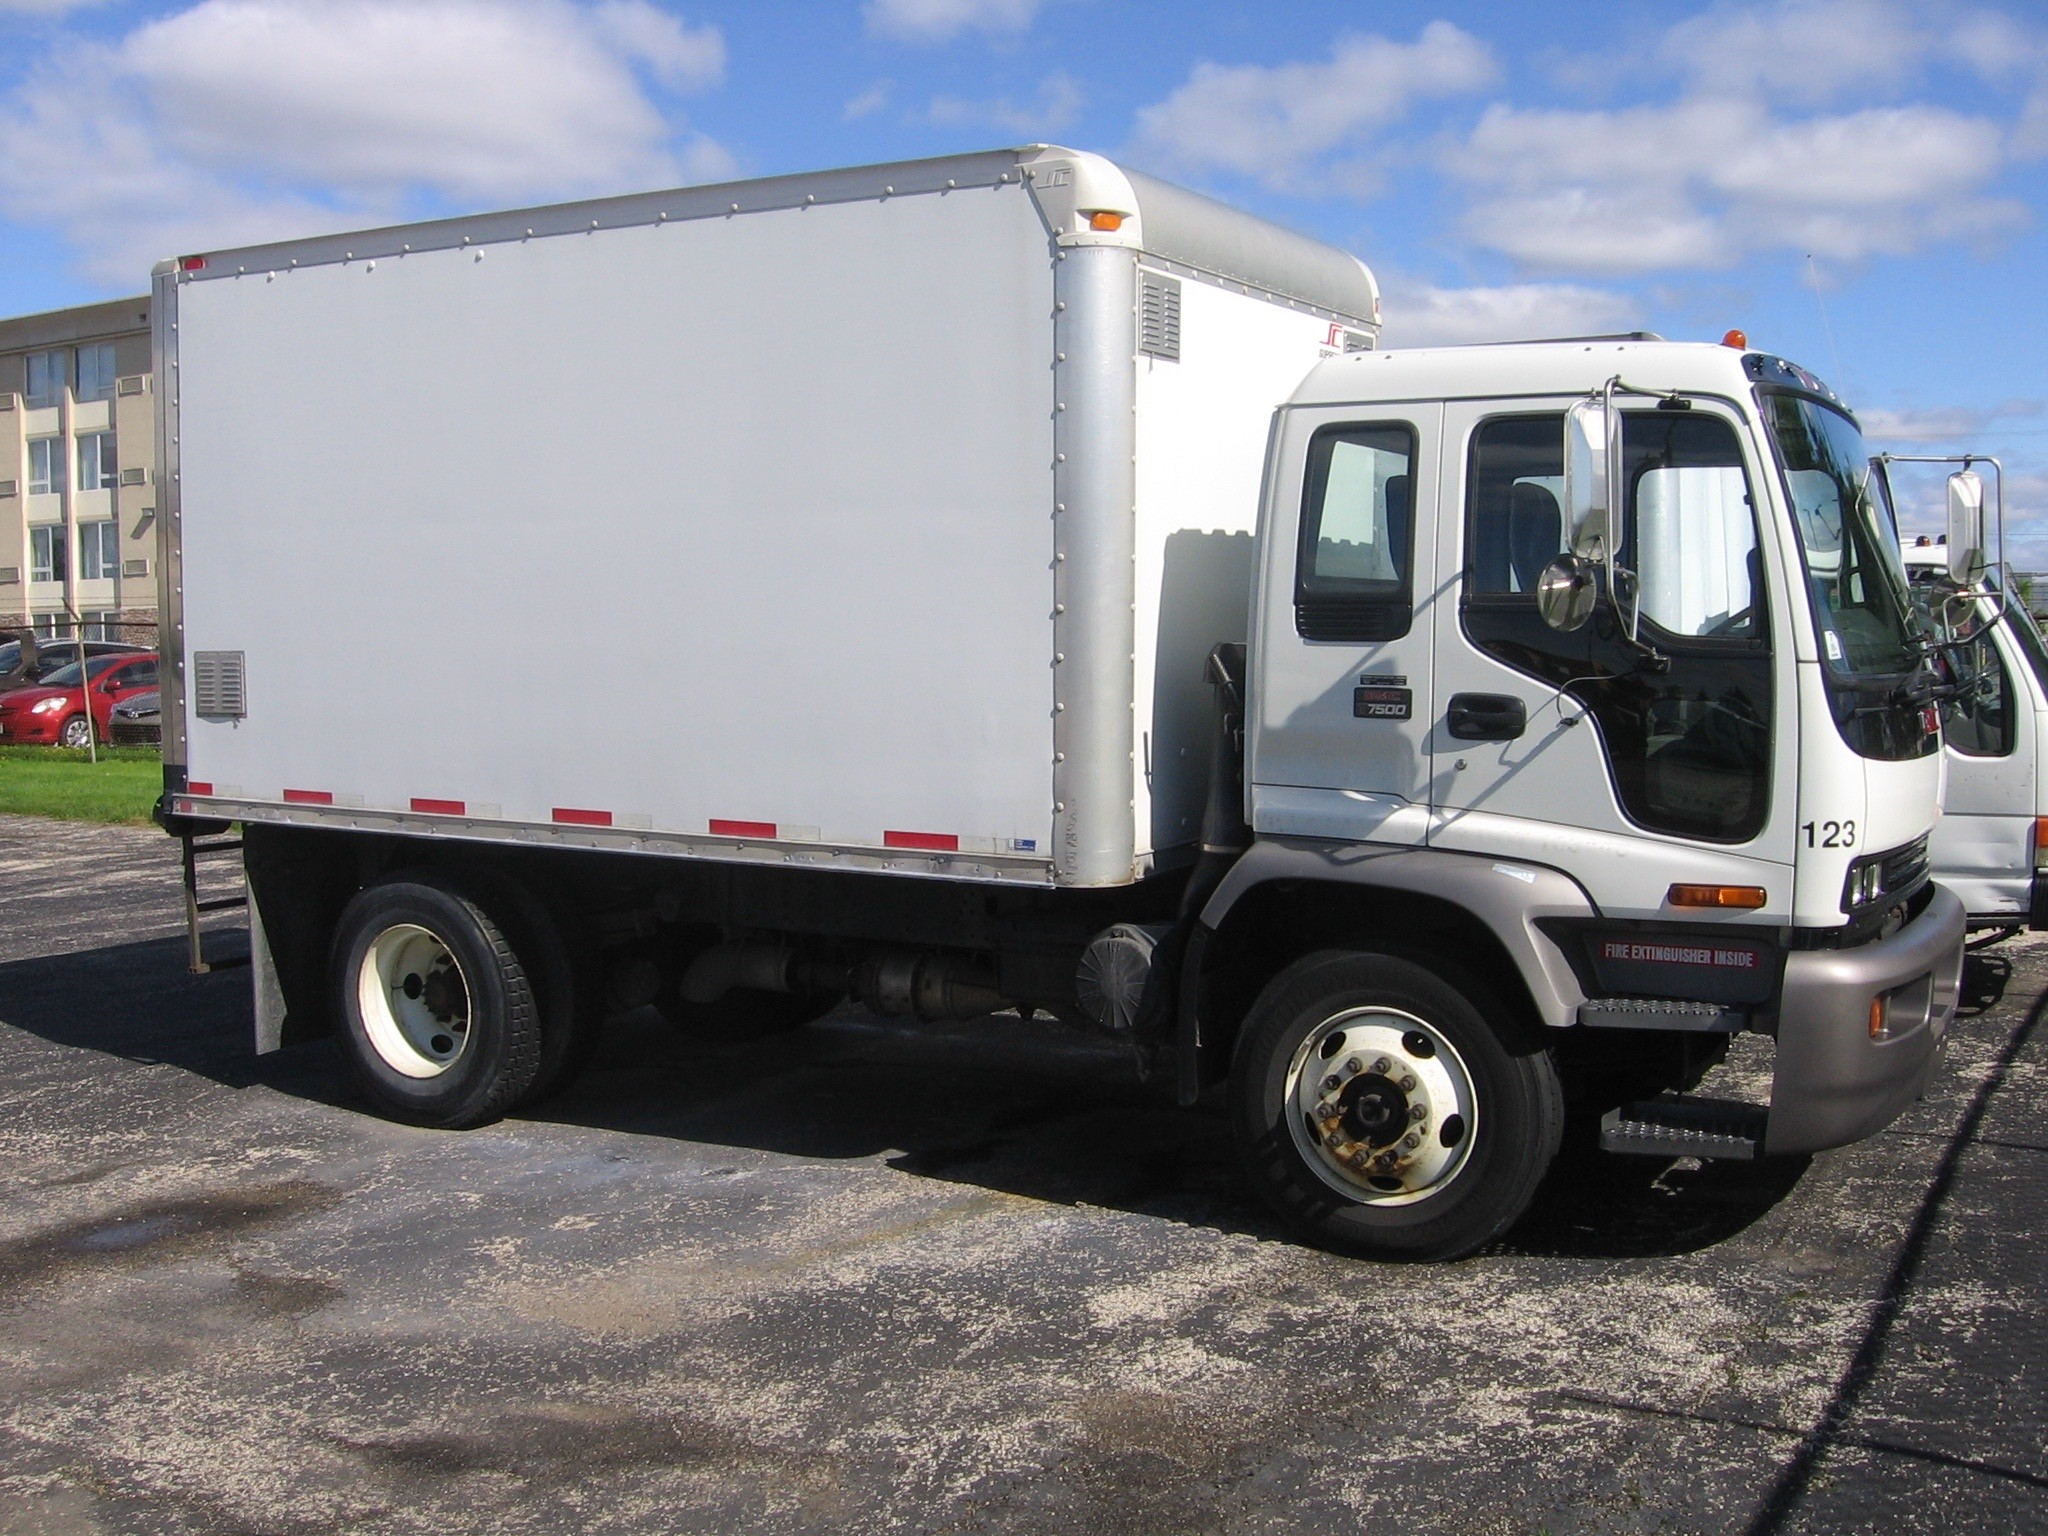 Used, 2009, GMC, T-Series 7500, Cab / Chassis Trucks